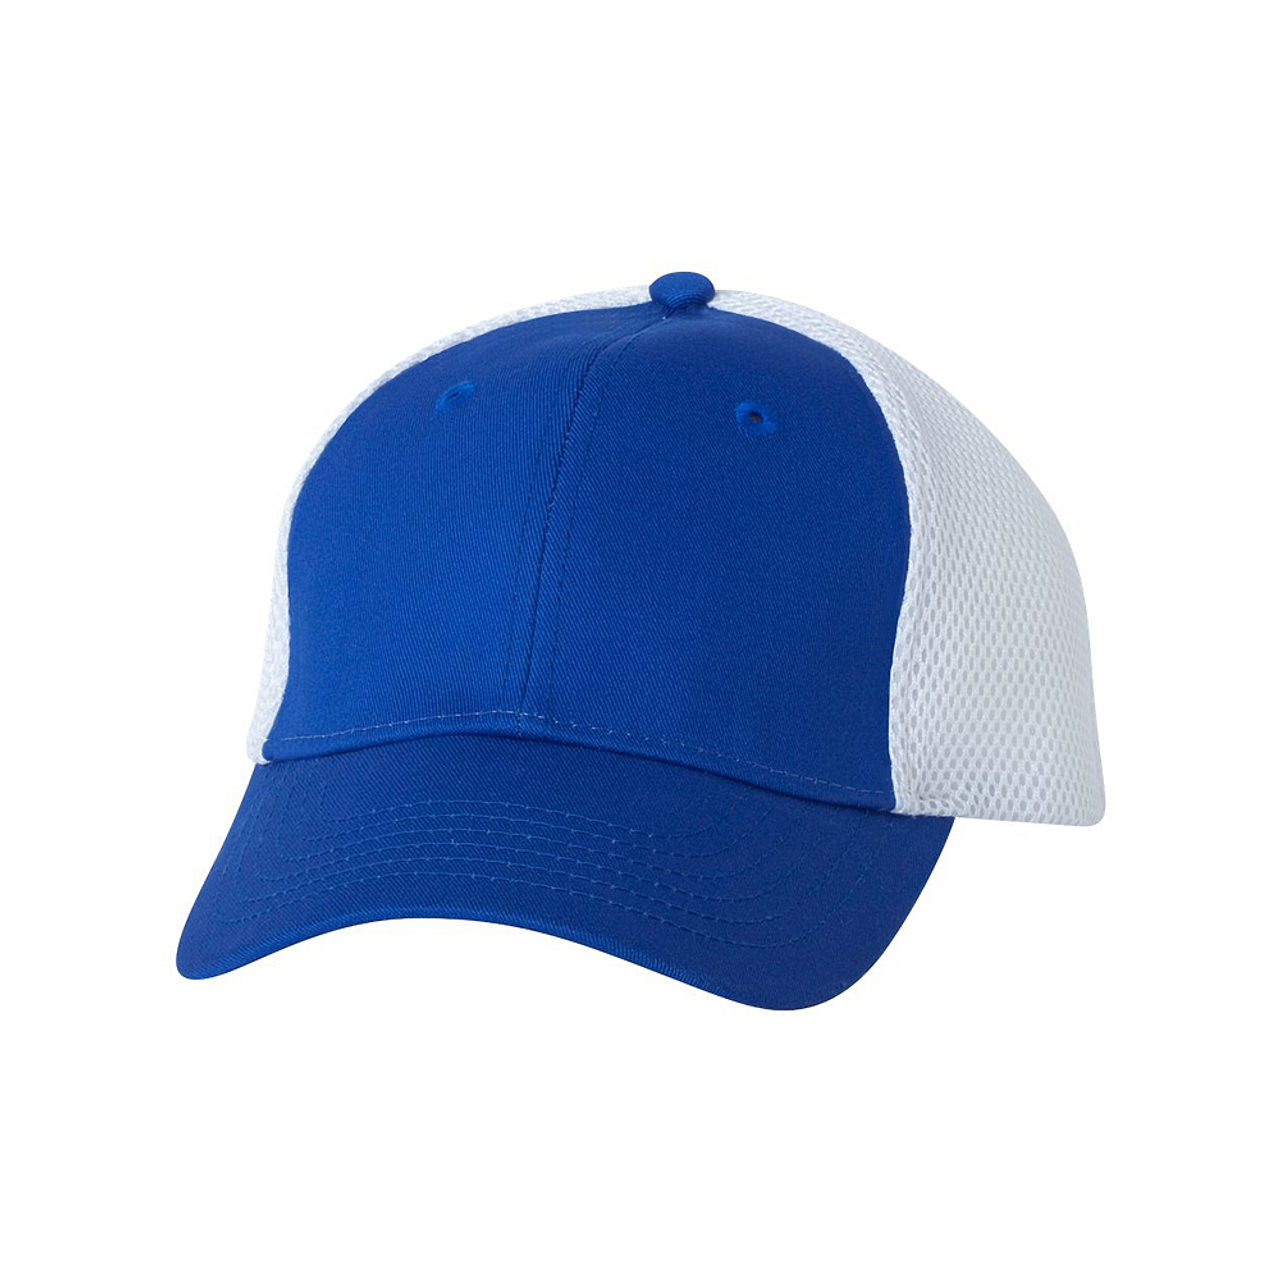 Royal/White - SP3200 Sportsman Mesh Back Cap